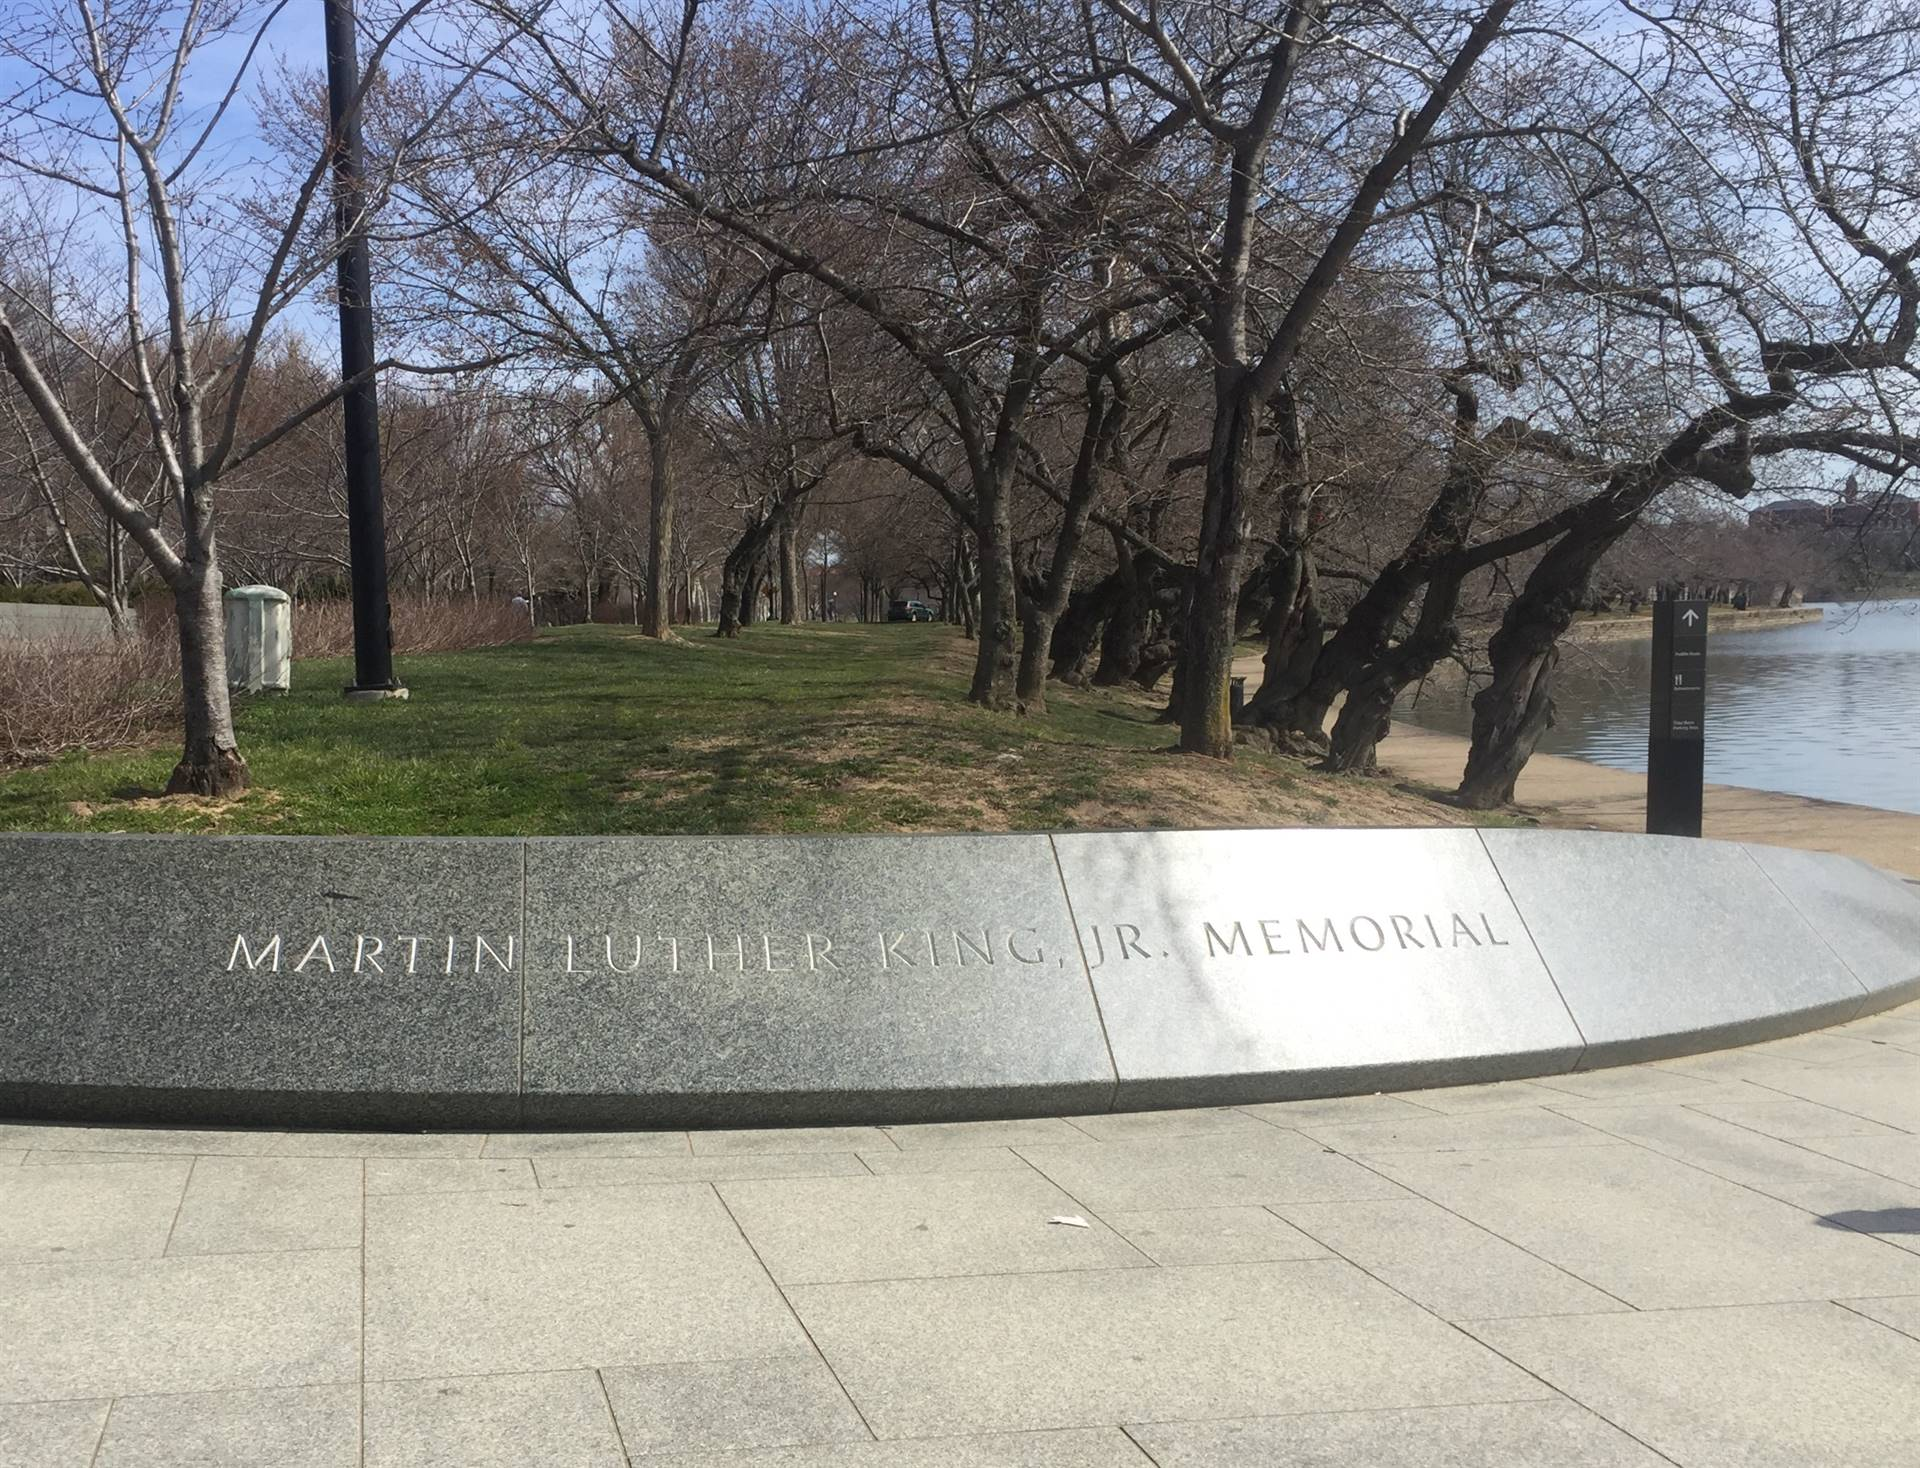 MLK jr. memorial sign